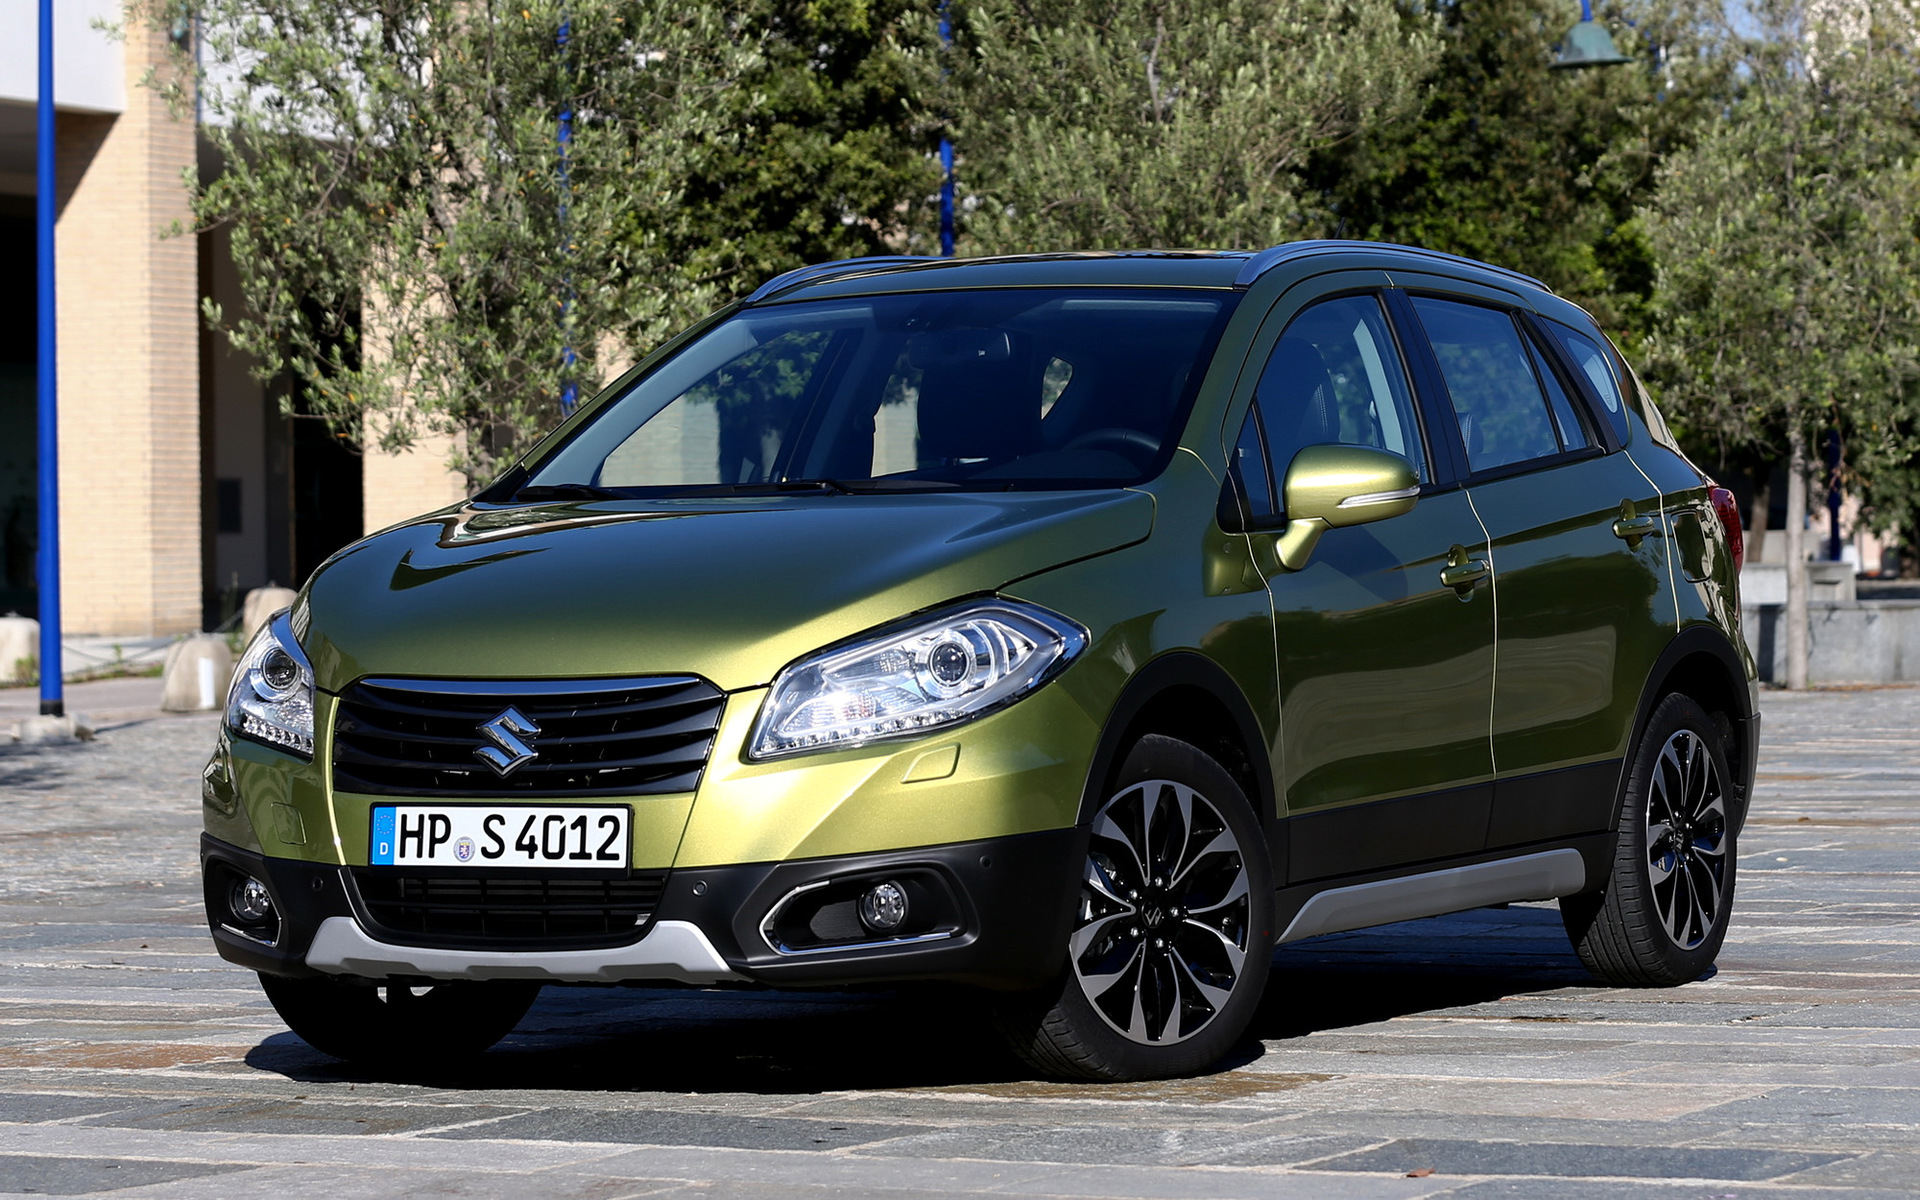 suzuki sx4 s cross 2013 wallpapers and hd images car pixel. Black Bedroom Furniture Sets. Home Design Ideas